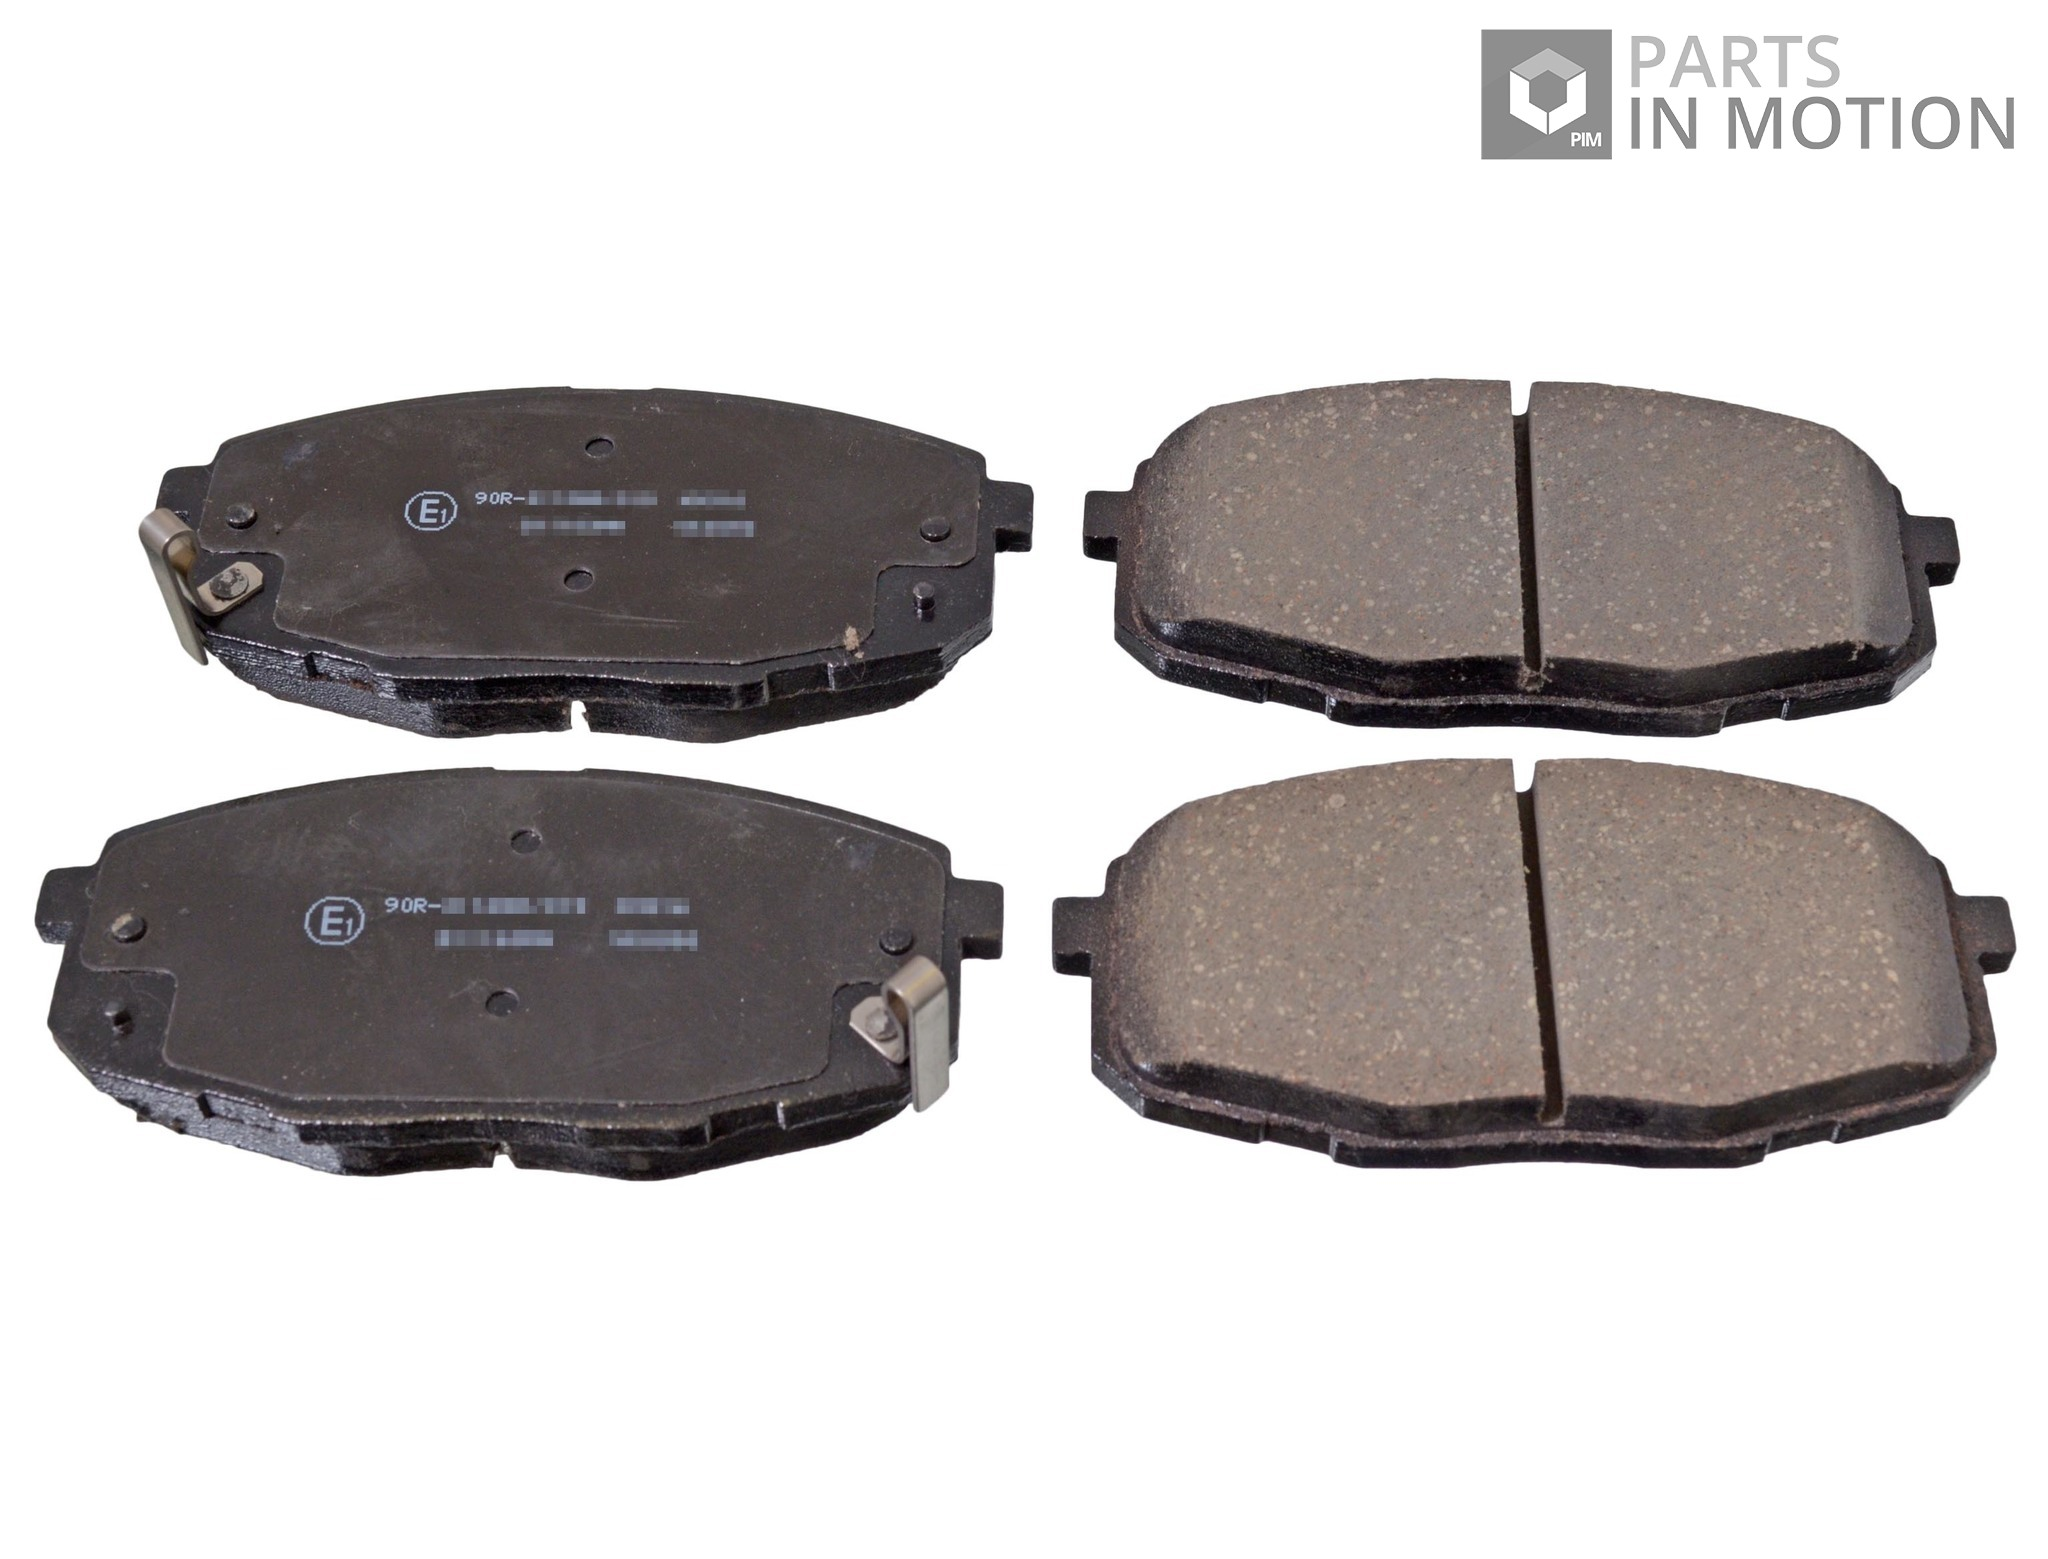 brake pads set fits hyundai i30 front 1 4 1 6 2 0 07 to 12 adg04261 blue print ebay. Black Bedroom Furniture Sets. Home Design Ideas